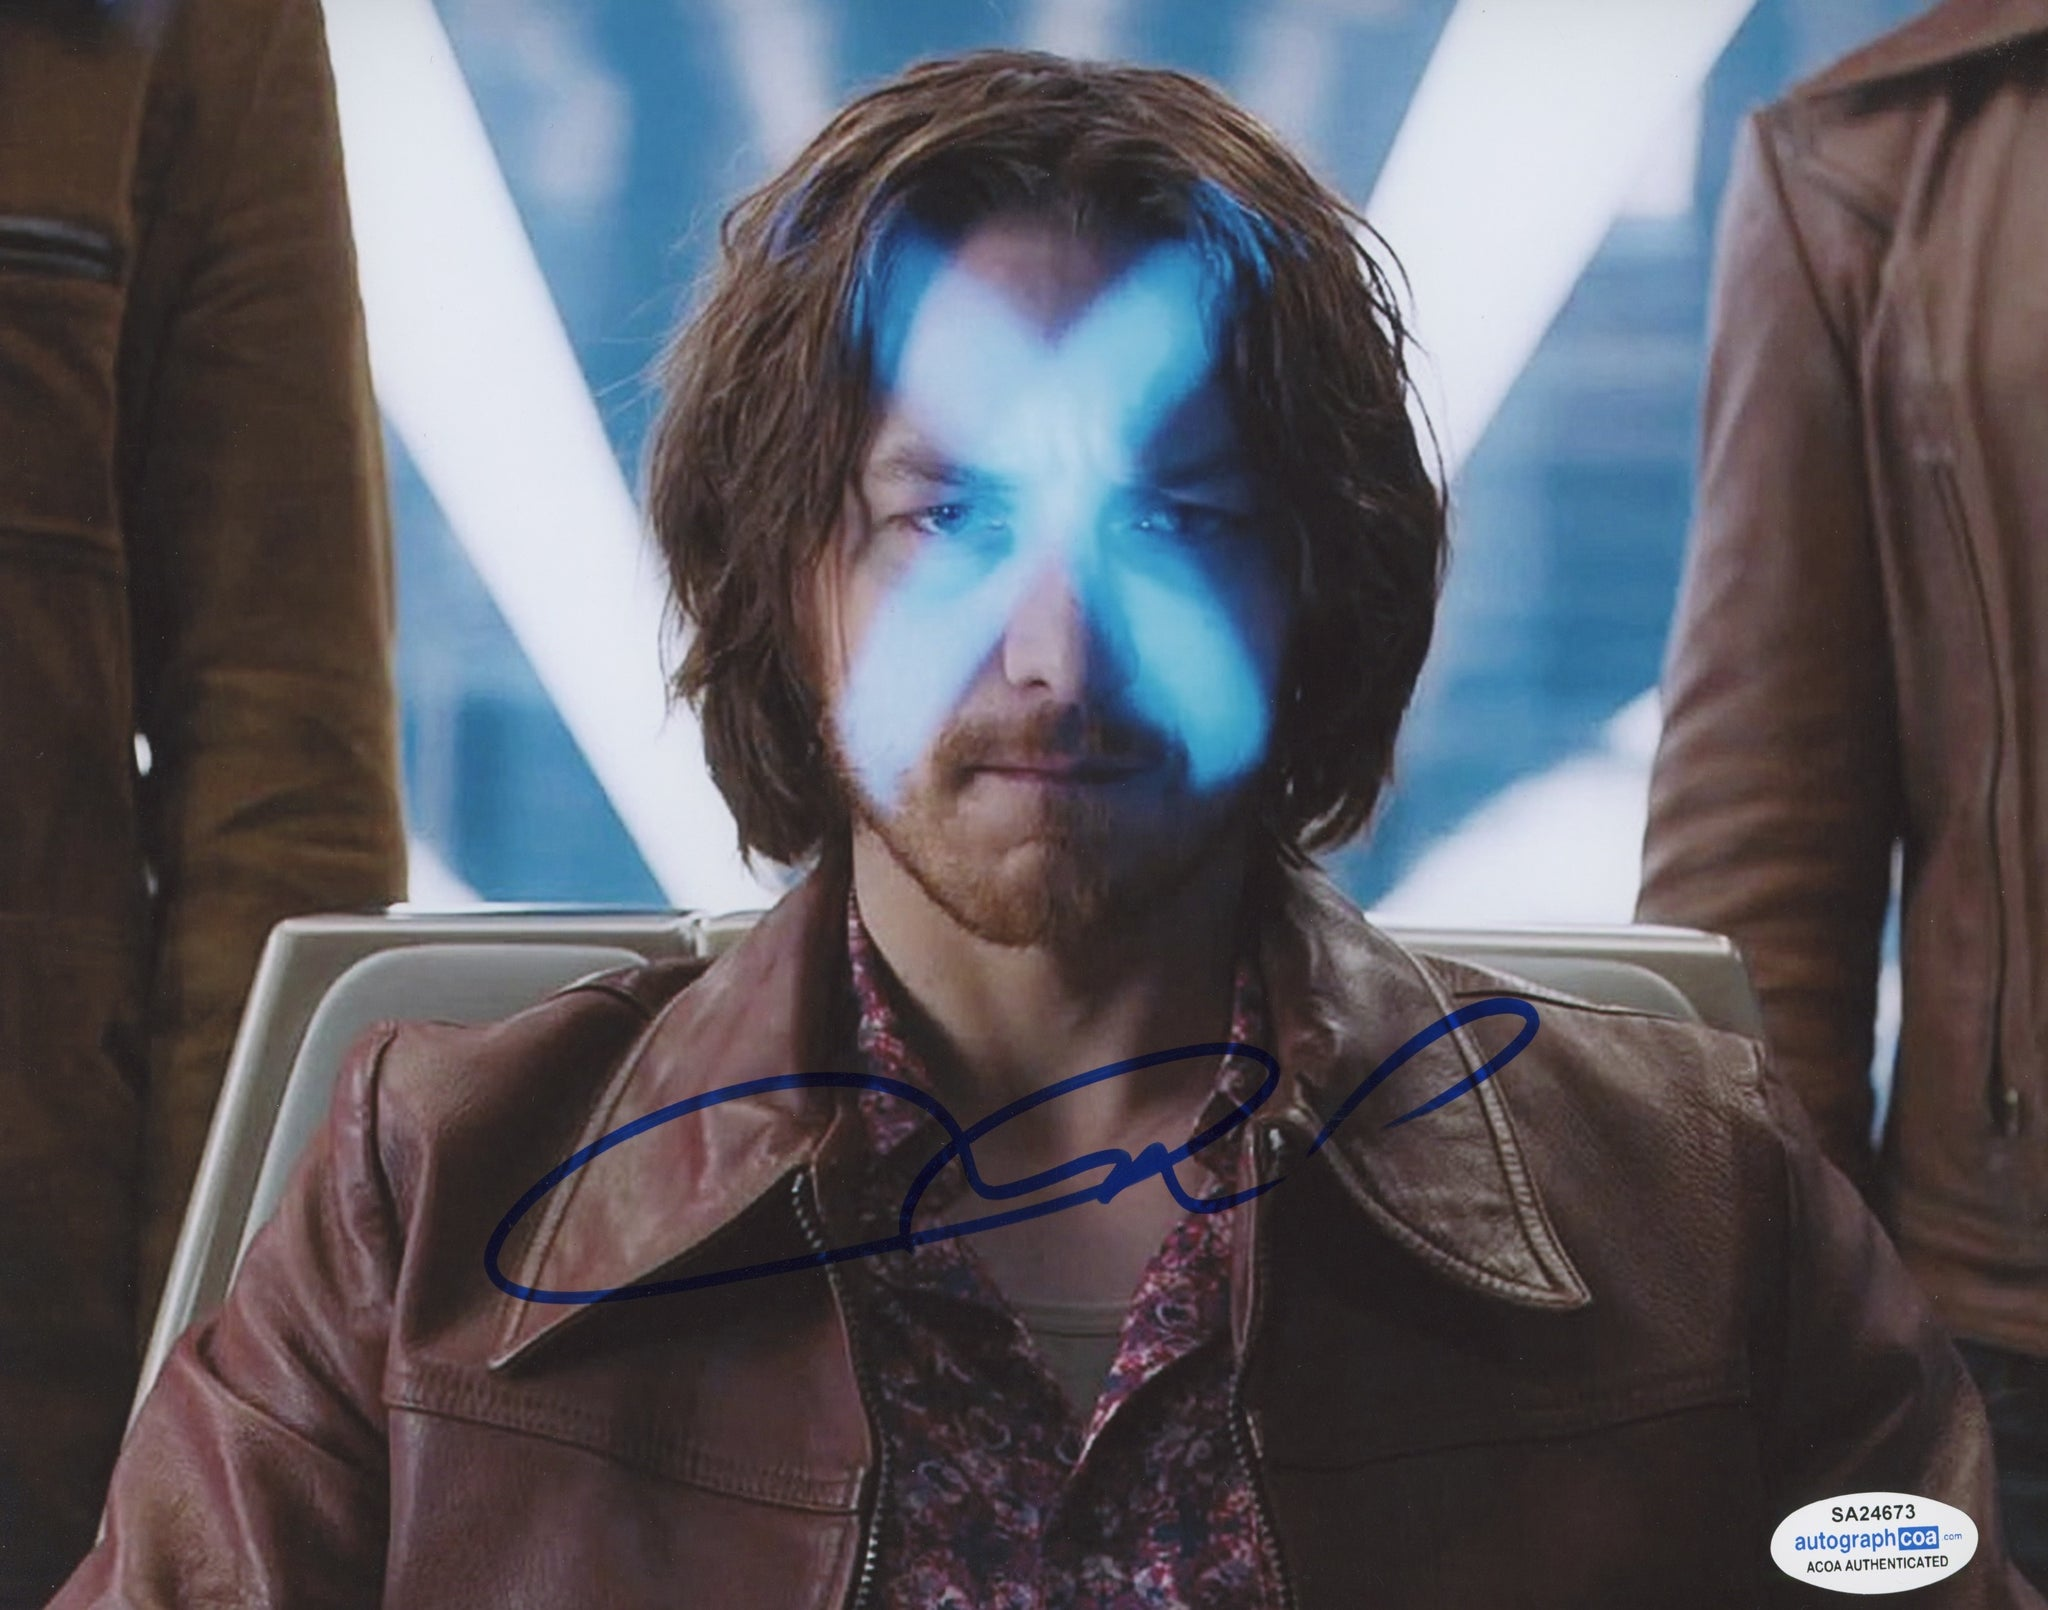 James McAvoy X-Men Professor X Signed Autograph 8x10 Photo ACOA - Outlaw Hobbies Authentic Autographs